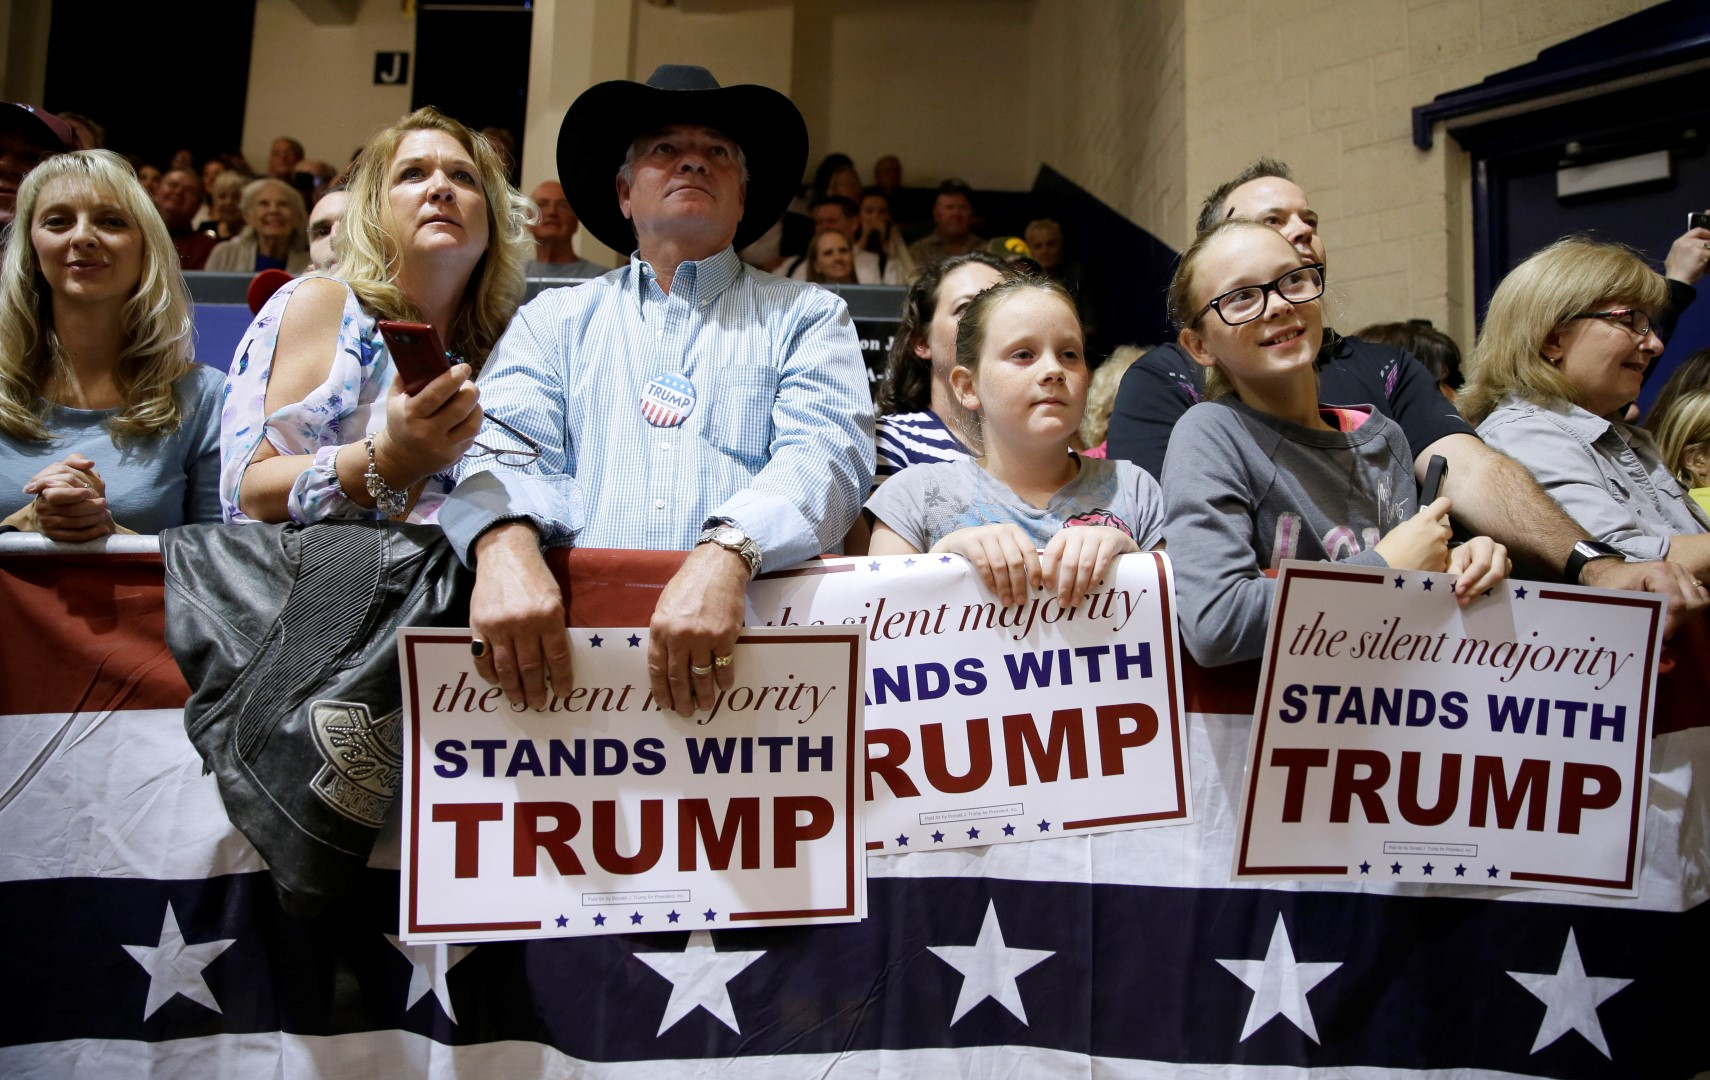 Trump-supporters-08.22.16-Large.jpg